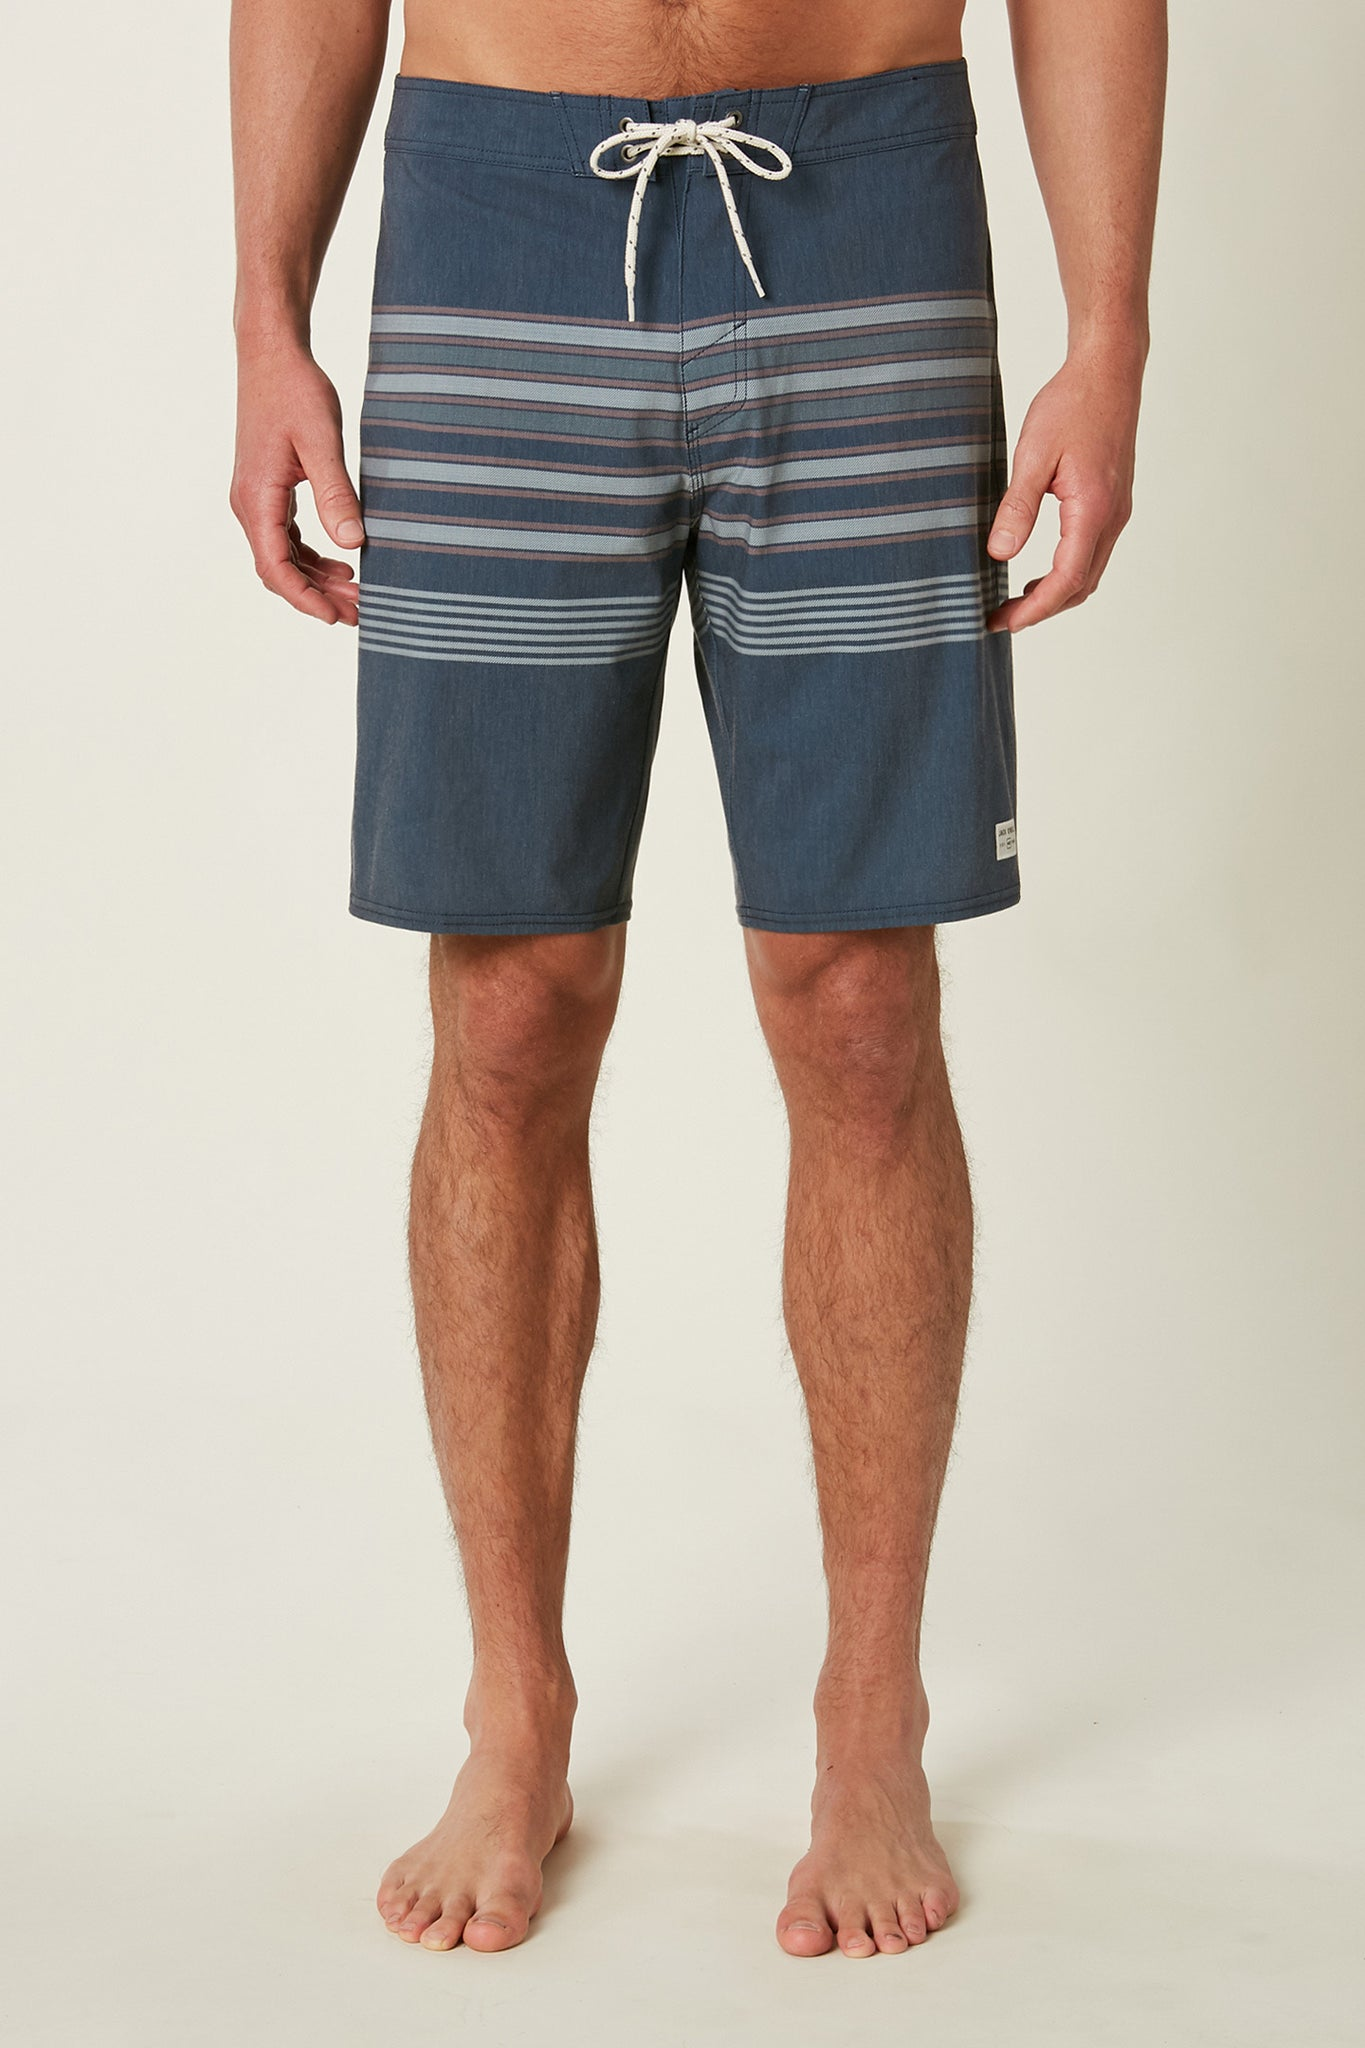 Jack O'Neill South Swell Boardshorts - Navy | O'Neill